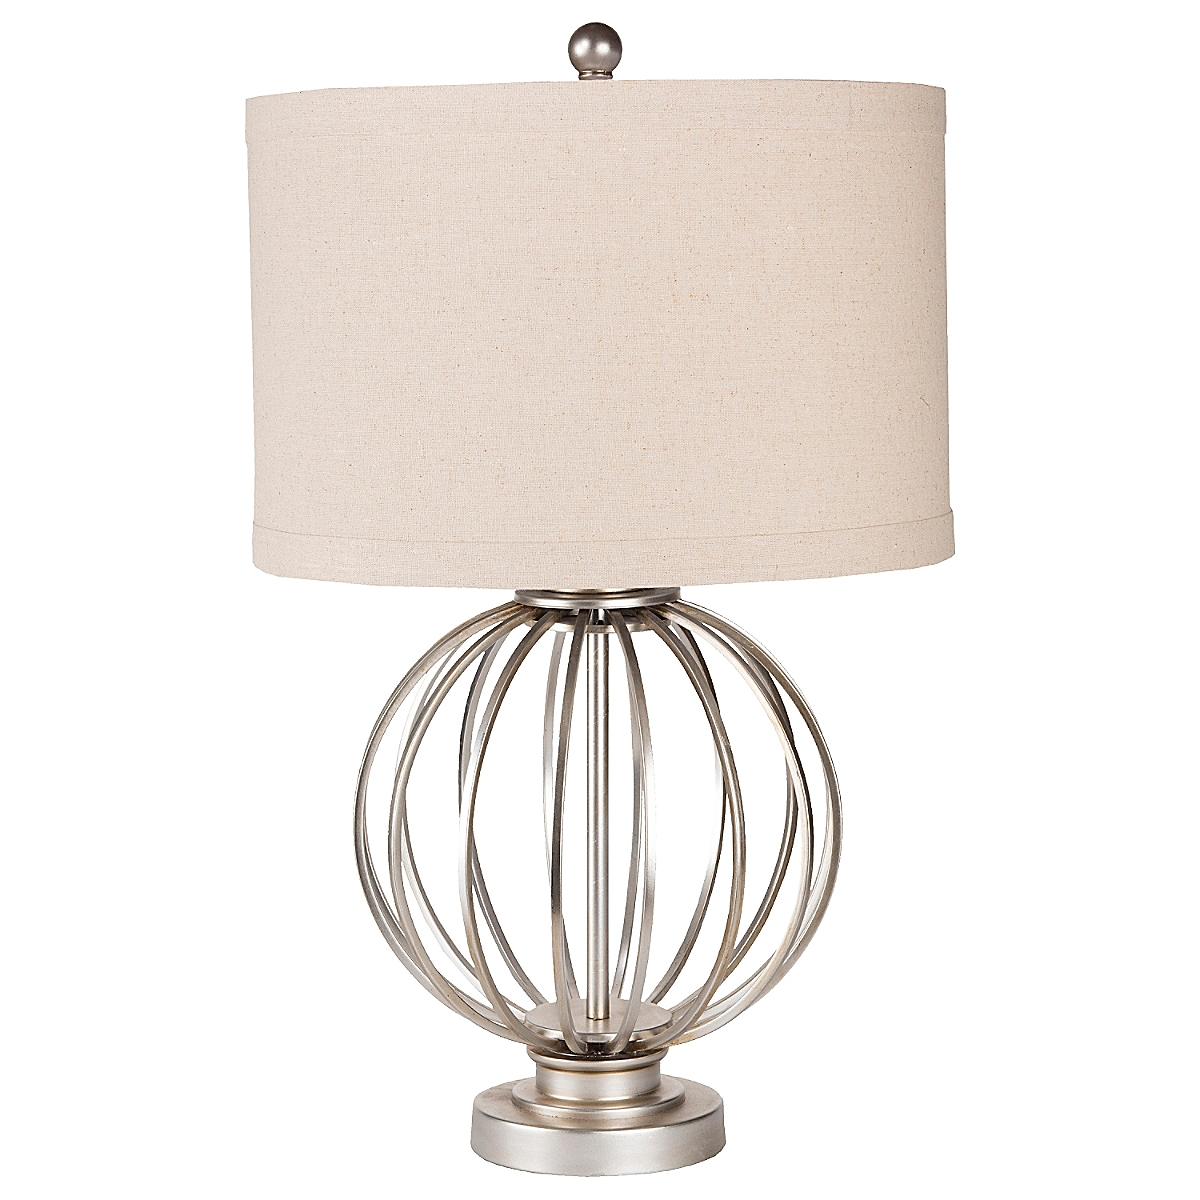 Maribelle Table Lamp